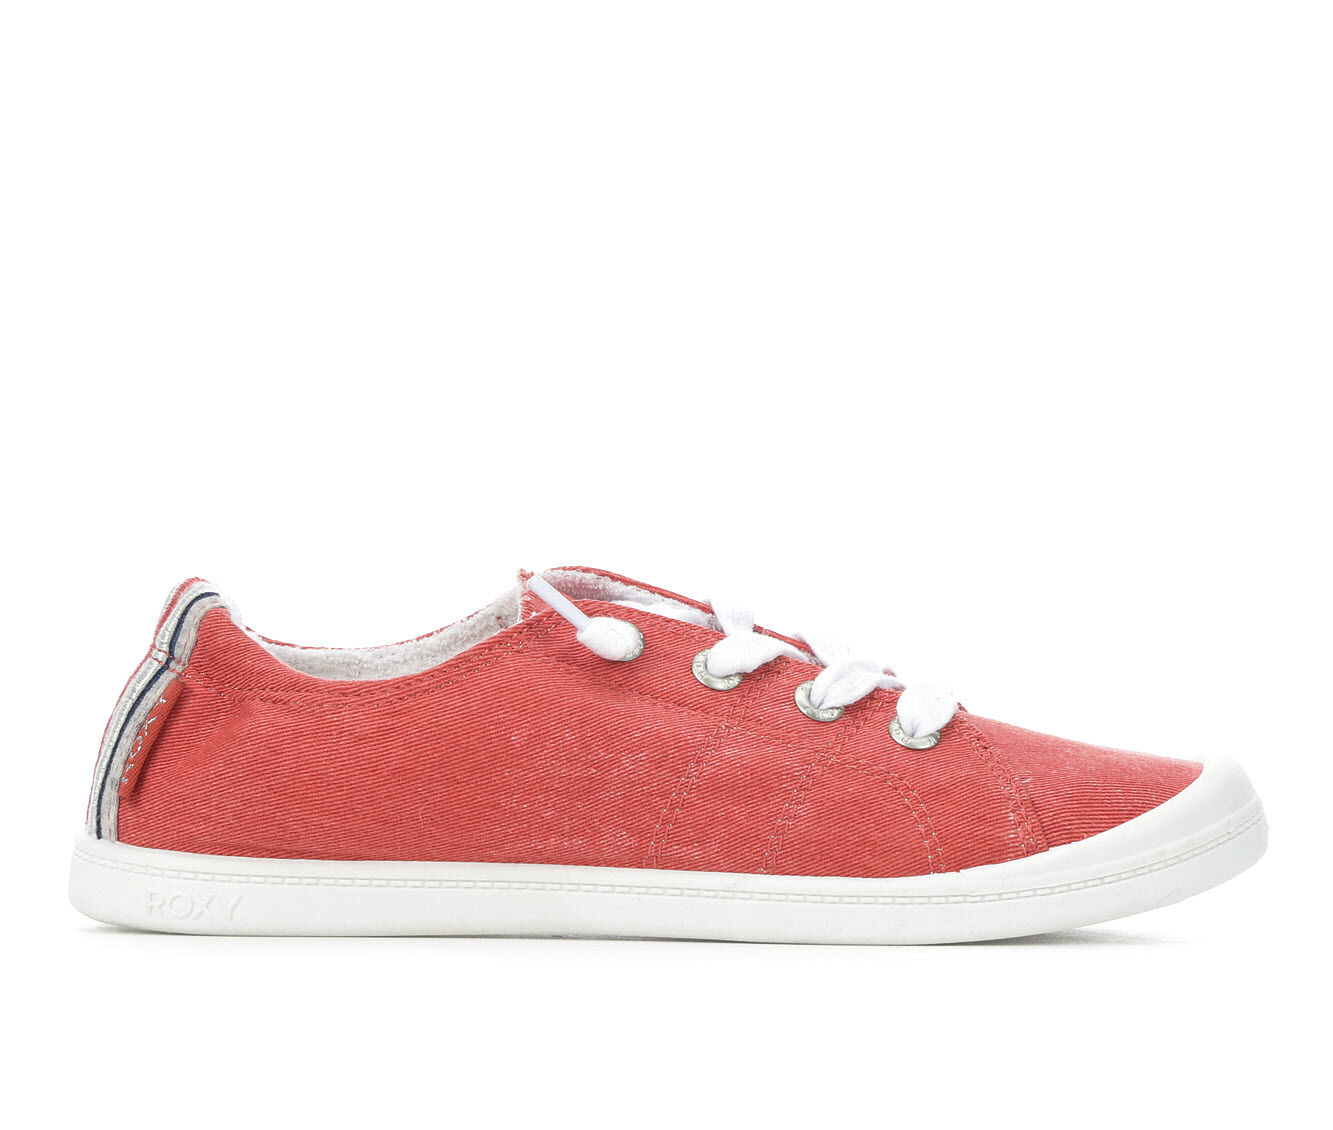 all styles Women's Roxy Bayshore Sneakers Red